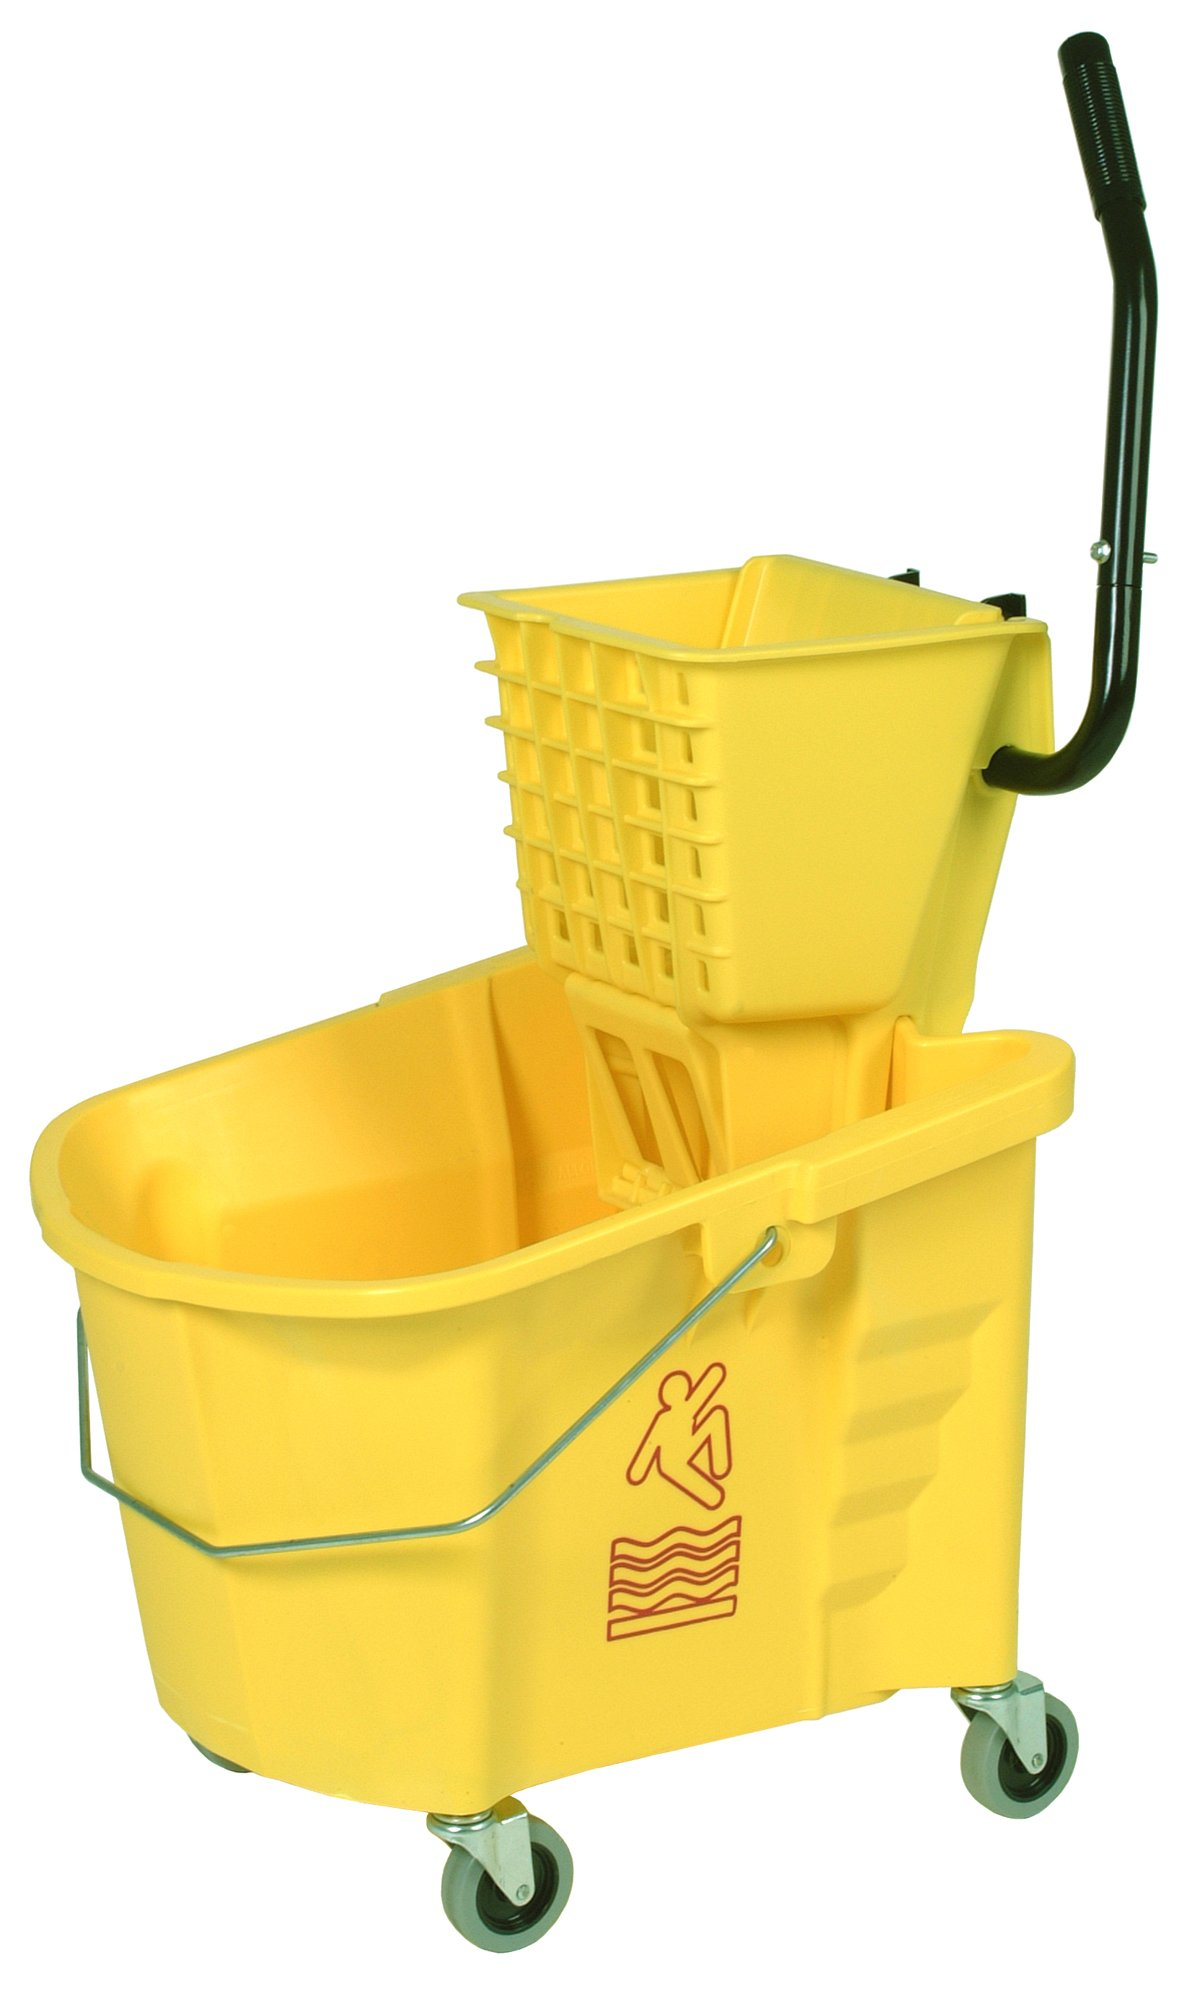 Continental 335-312YW, Splash Guard and Backsaver Combo Set with Squeeze-Type Wringer, Yellow (Case of 1)